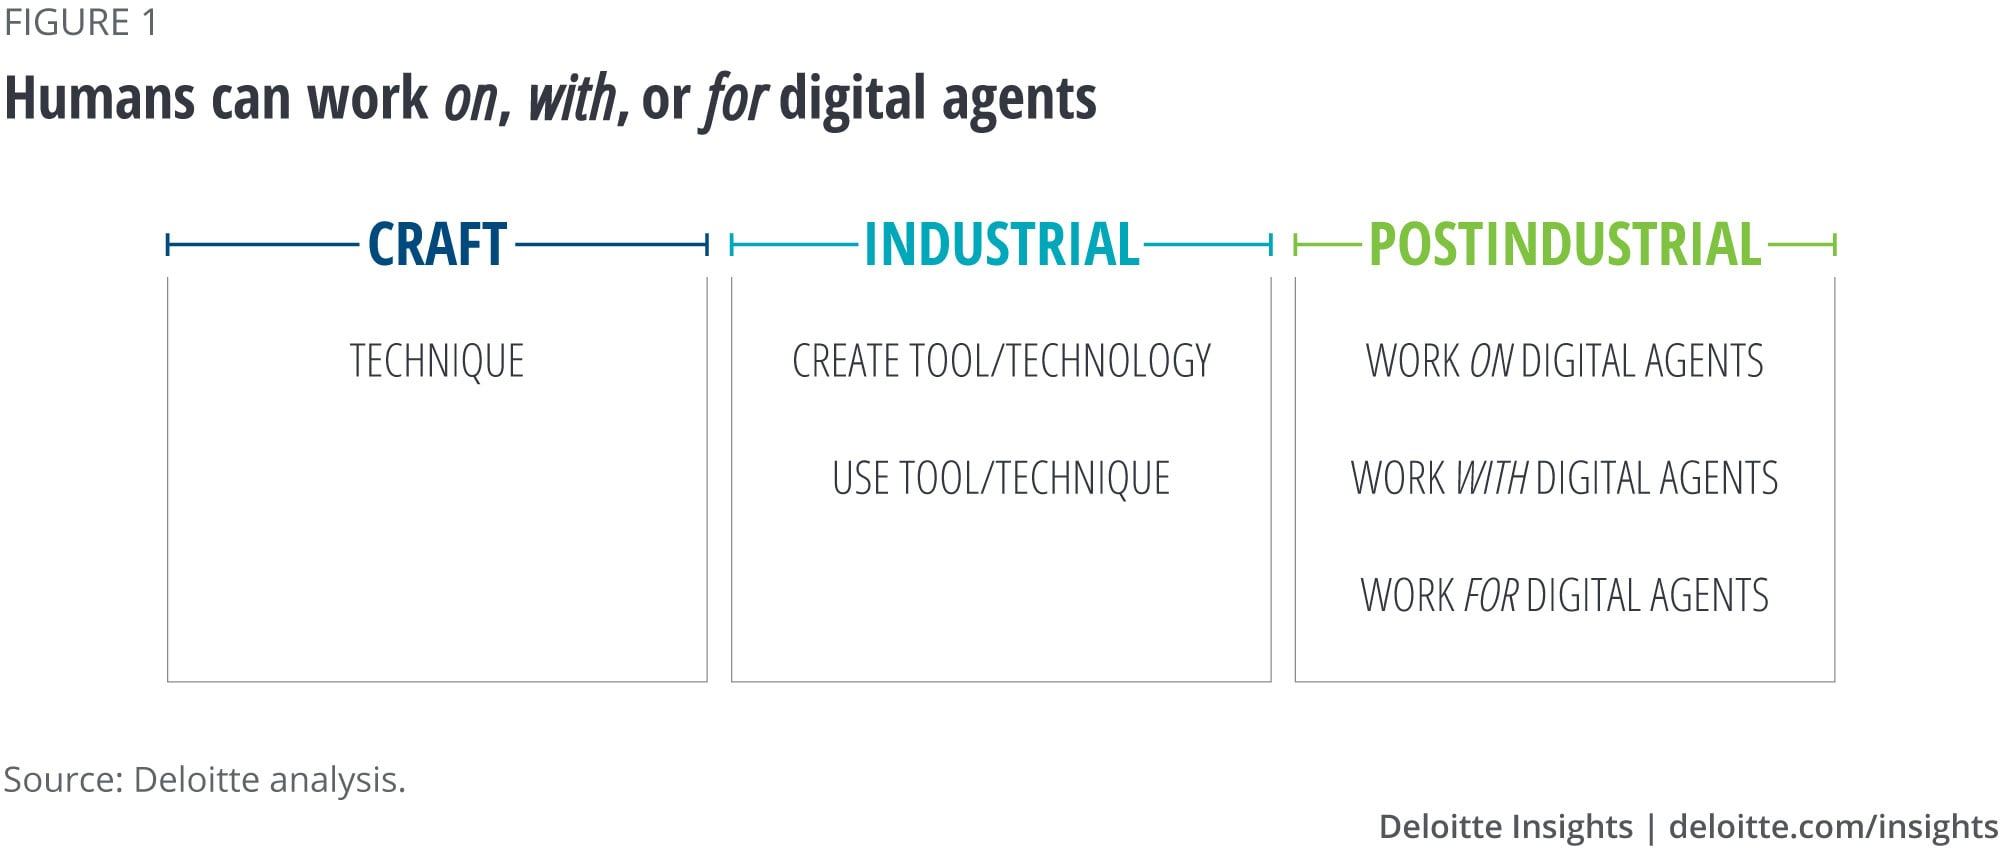 Humans can work on, with, or for digital agents